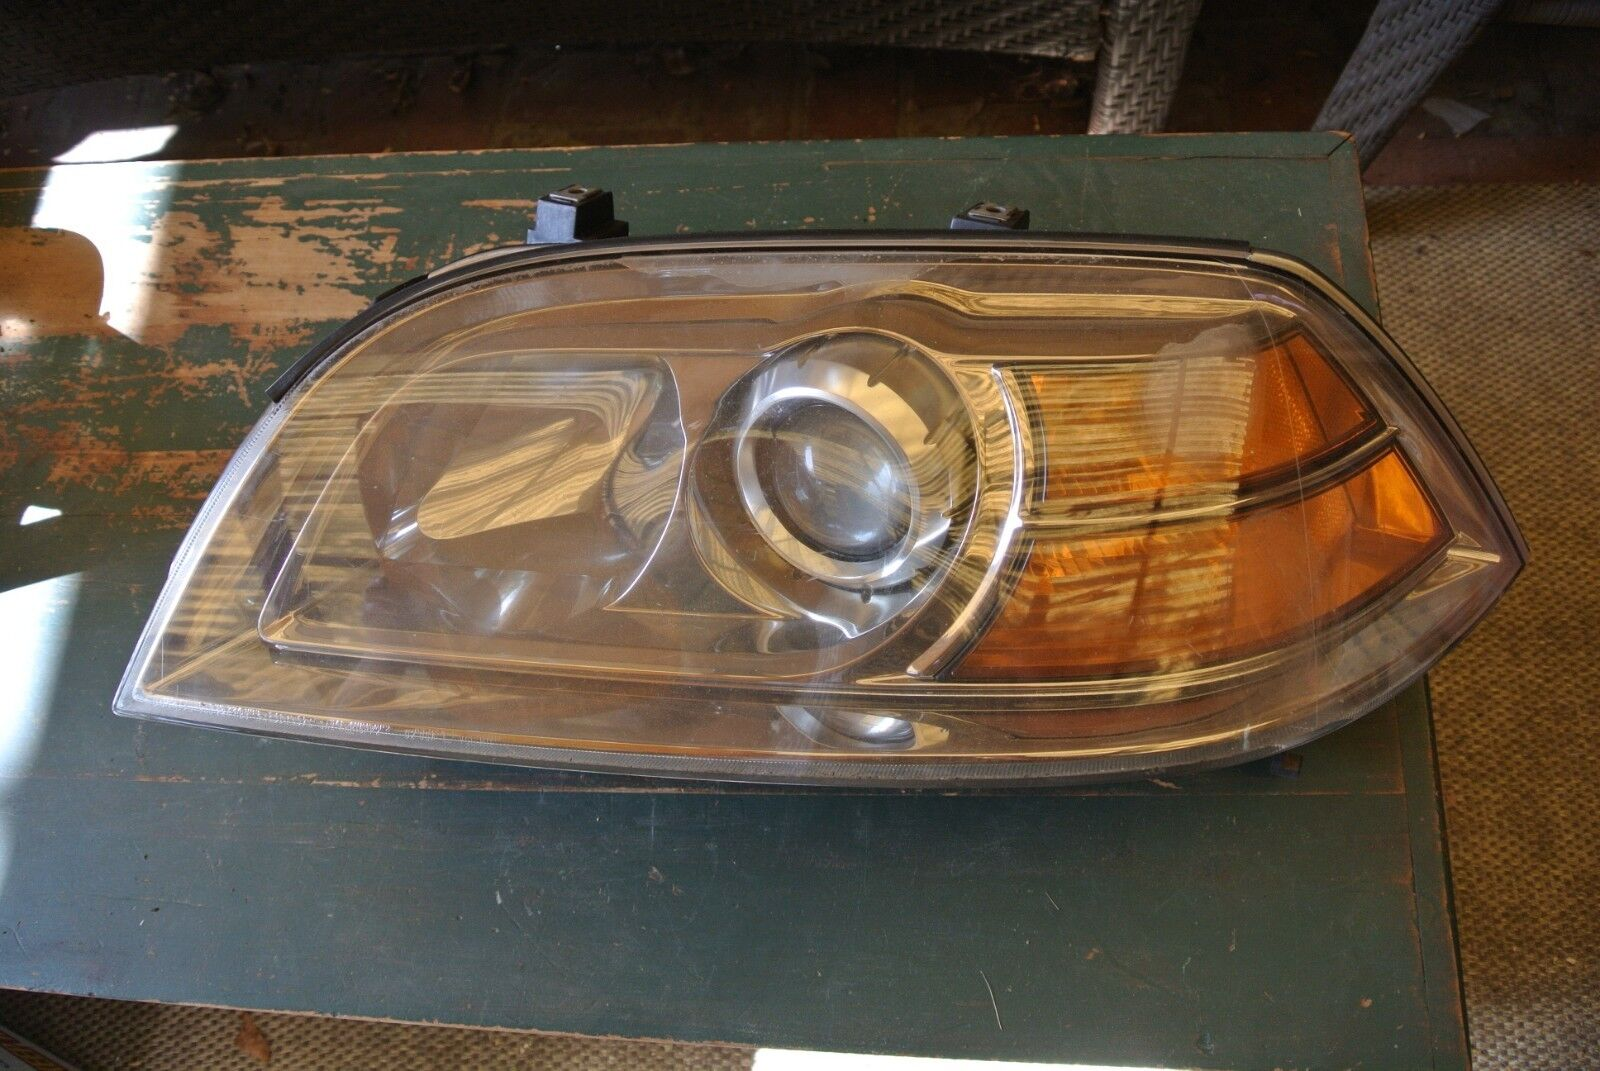 Used Acura Headlights For Sale Page - 2004 acura mdx headlights